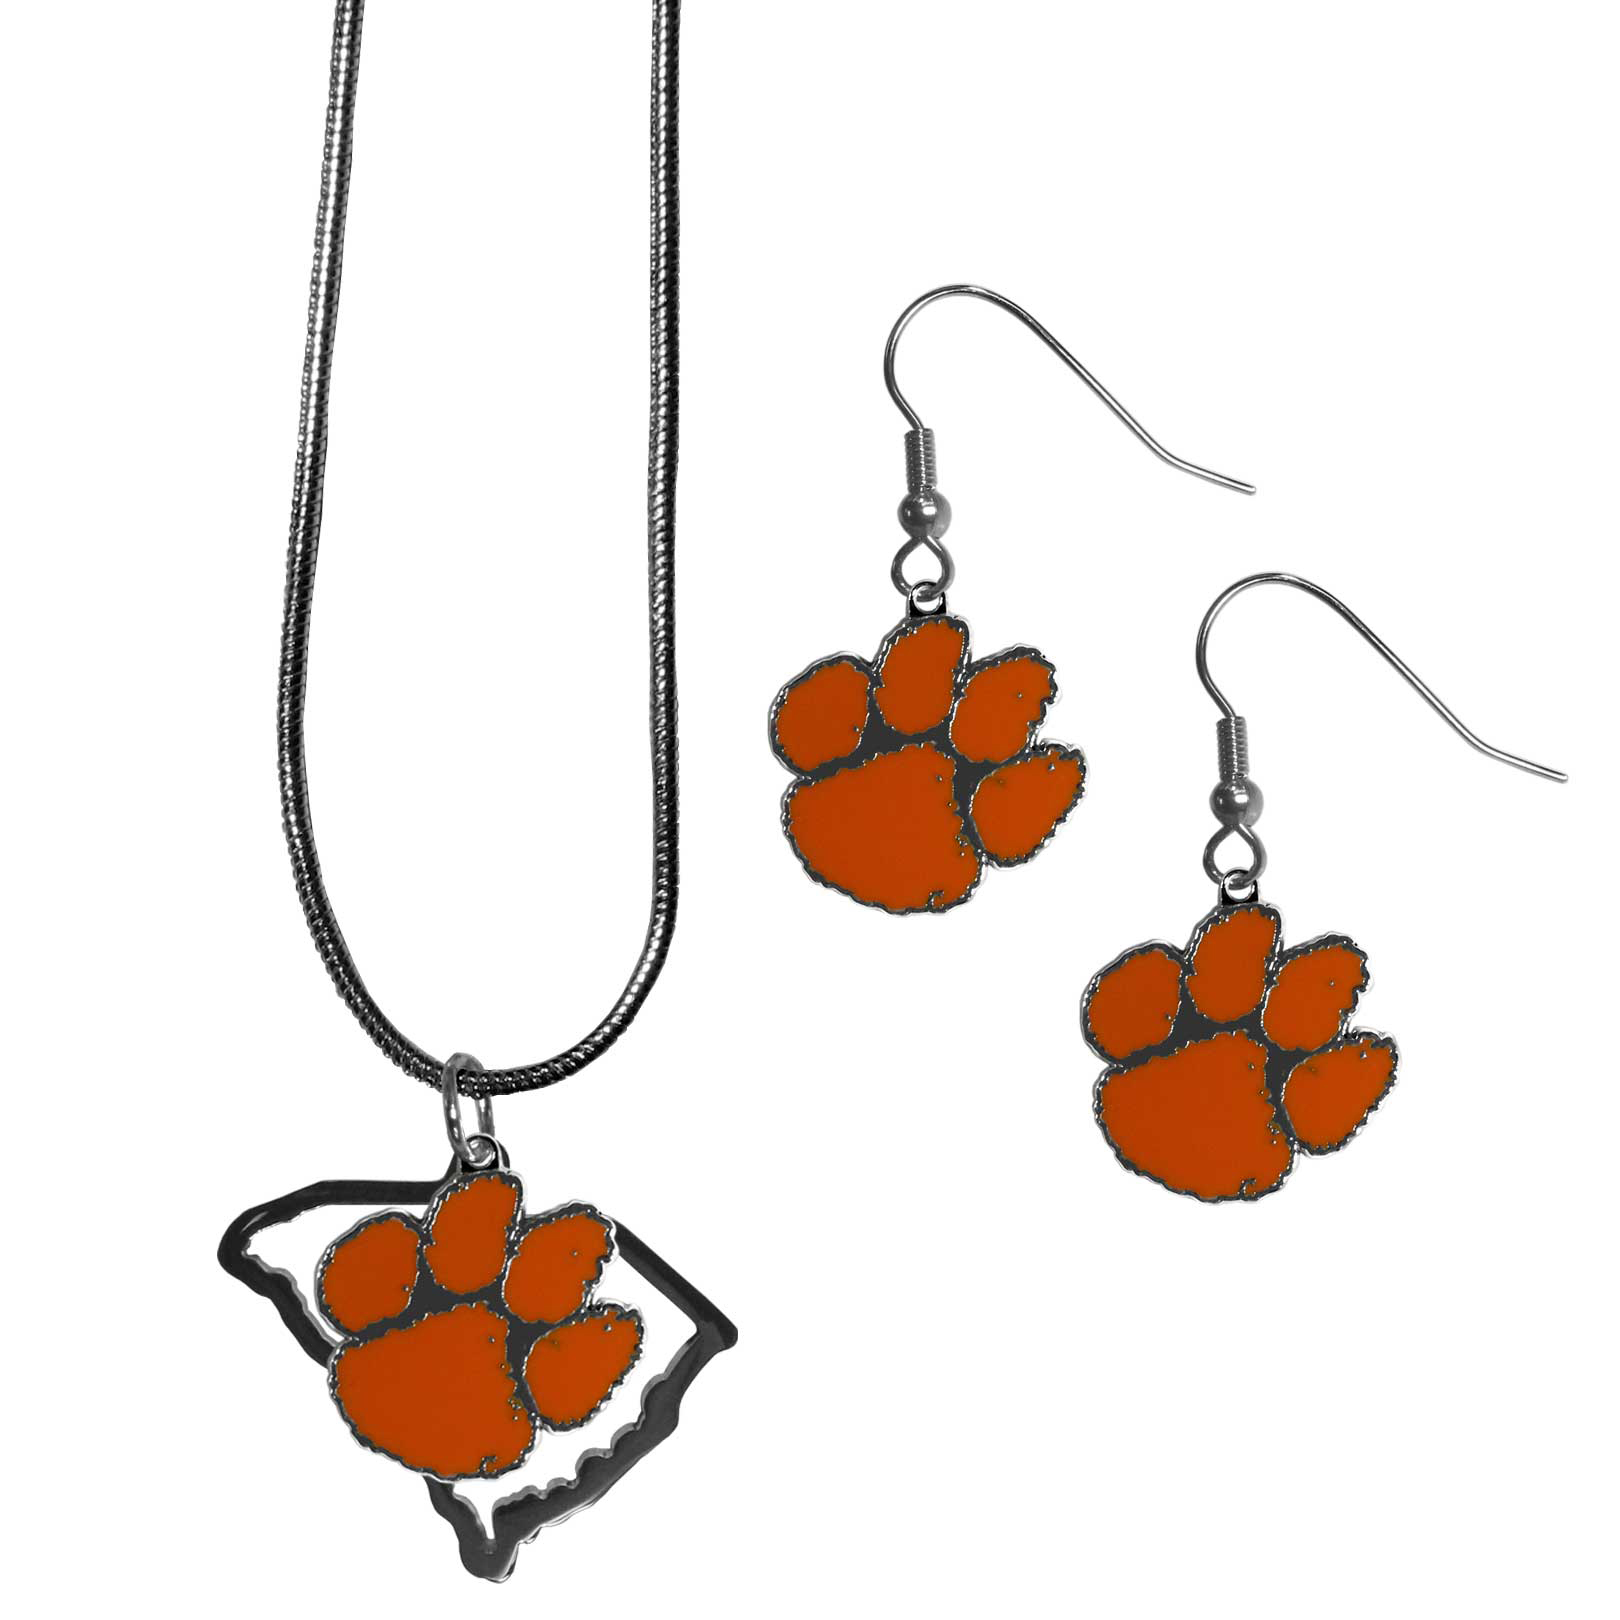 Clemson Tigers Dangle Earrings and State Necklace Set - Get in on the trend! State themes are a trend that just keeps getting more popular and this jewelry set takes the state style and give it a sporty twist with a Clemson Tigers necklace that features an Arizona state outline charm paired with a beautiful team charm and matching team charm dangle earrings. The earrings feature hypoallergenic fishhook posts that are nickel free.